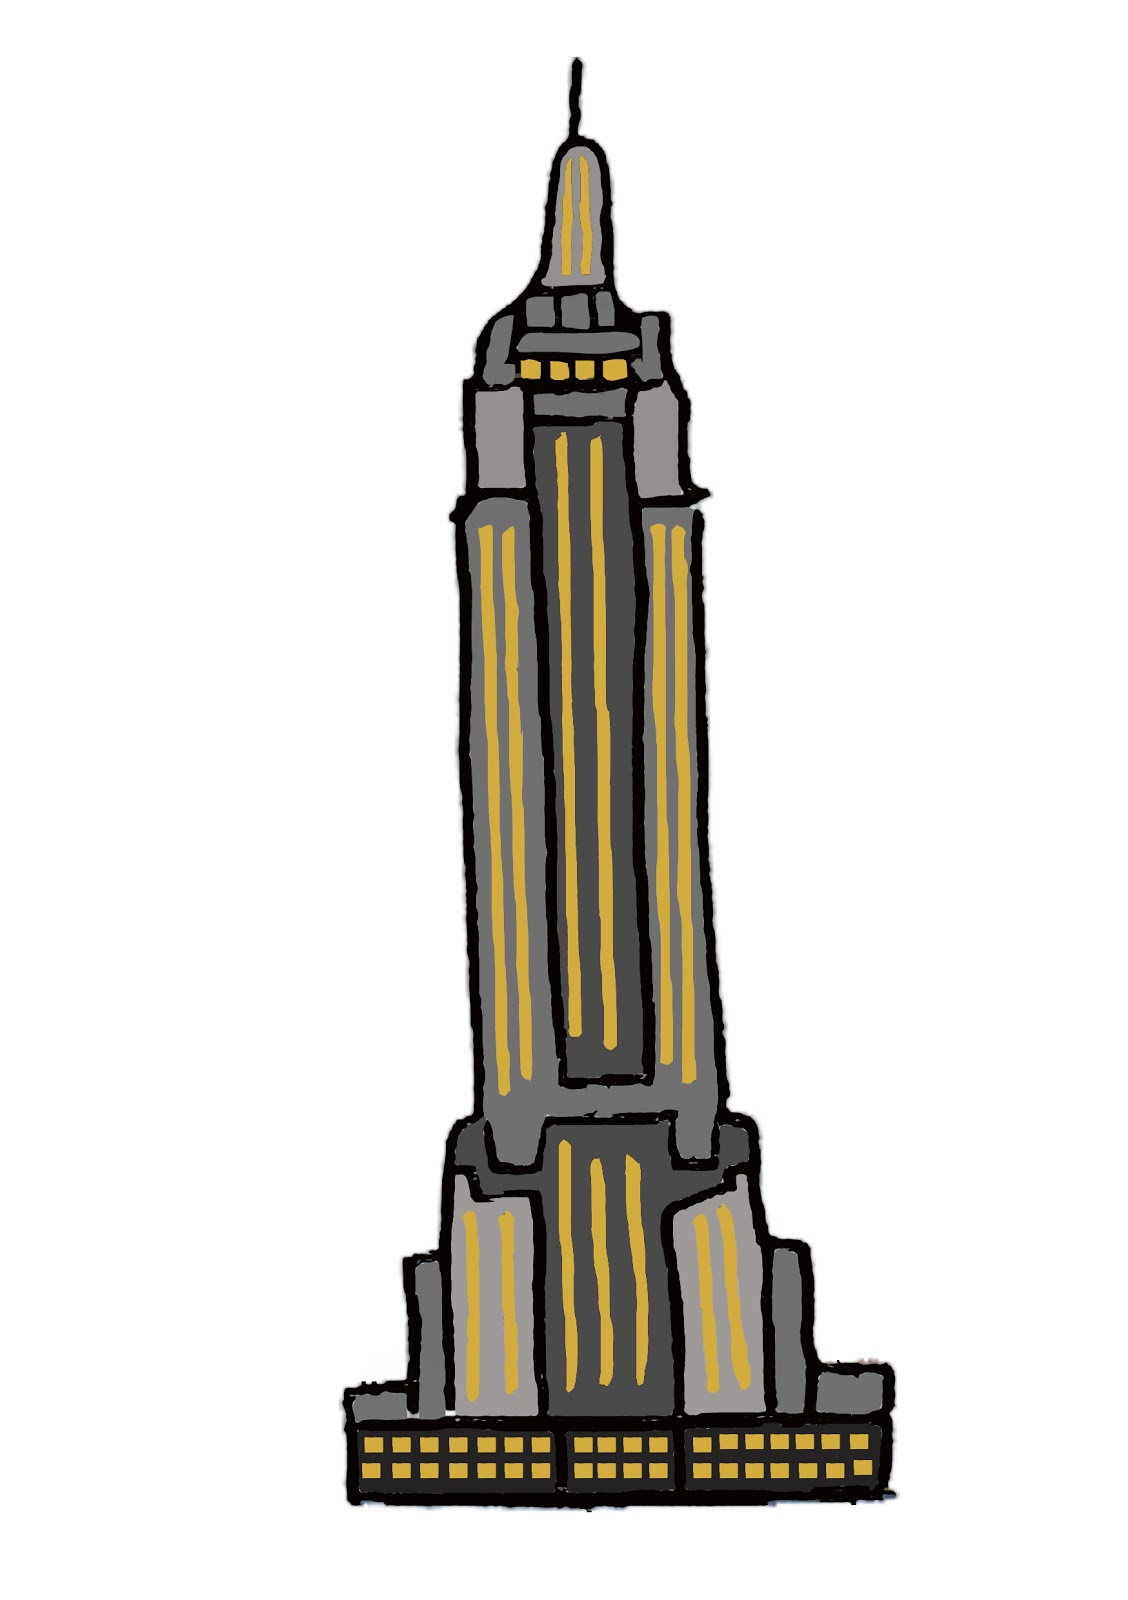 1128x1600 Collection Of Empire State Building Cartoon Drawing High